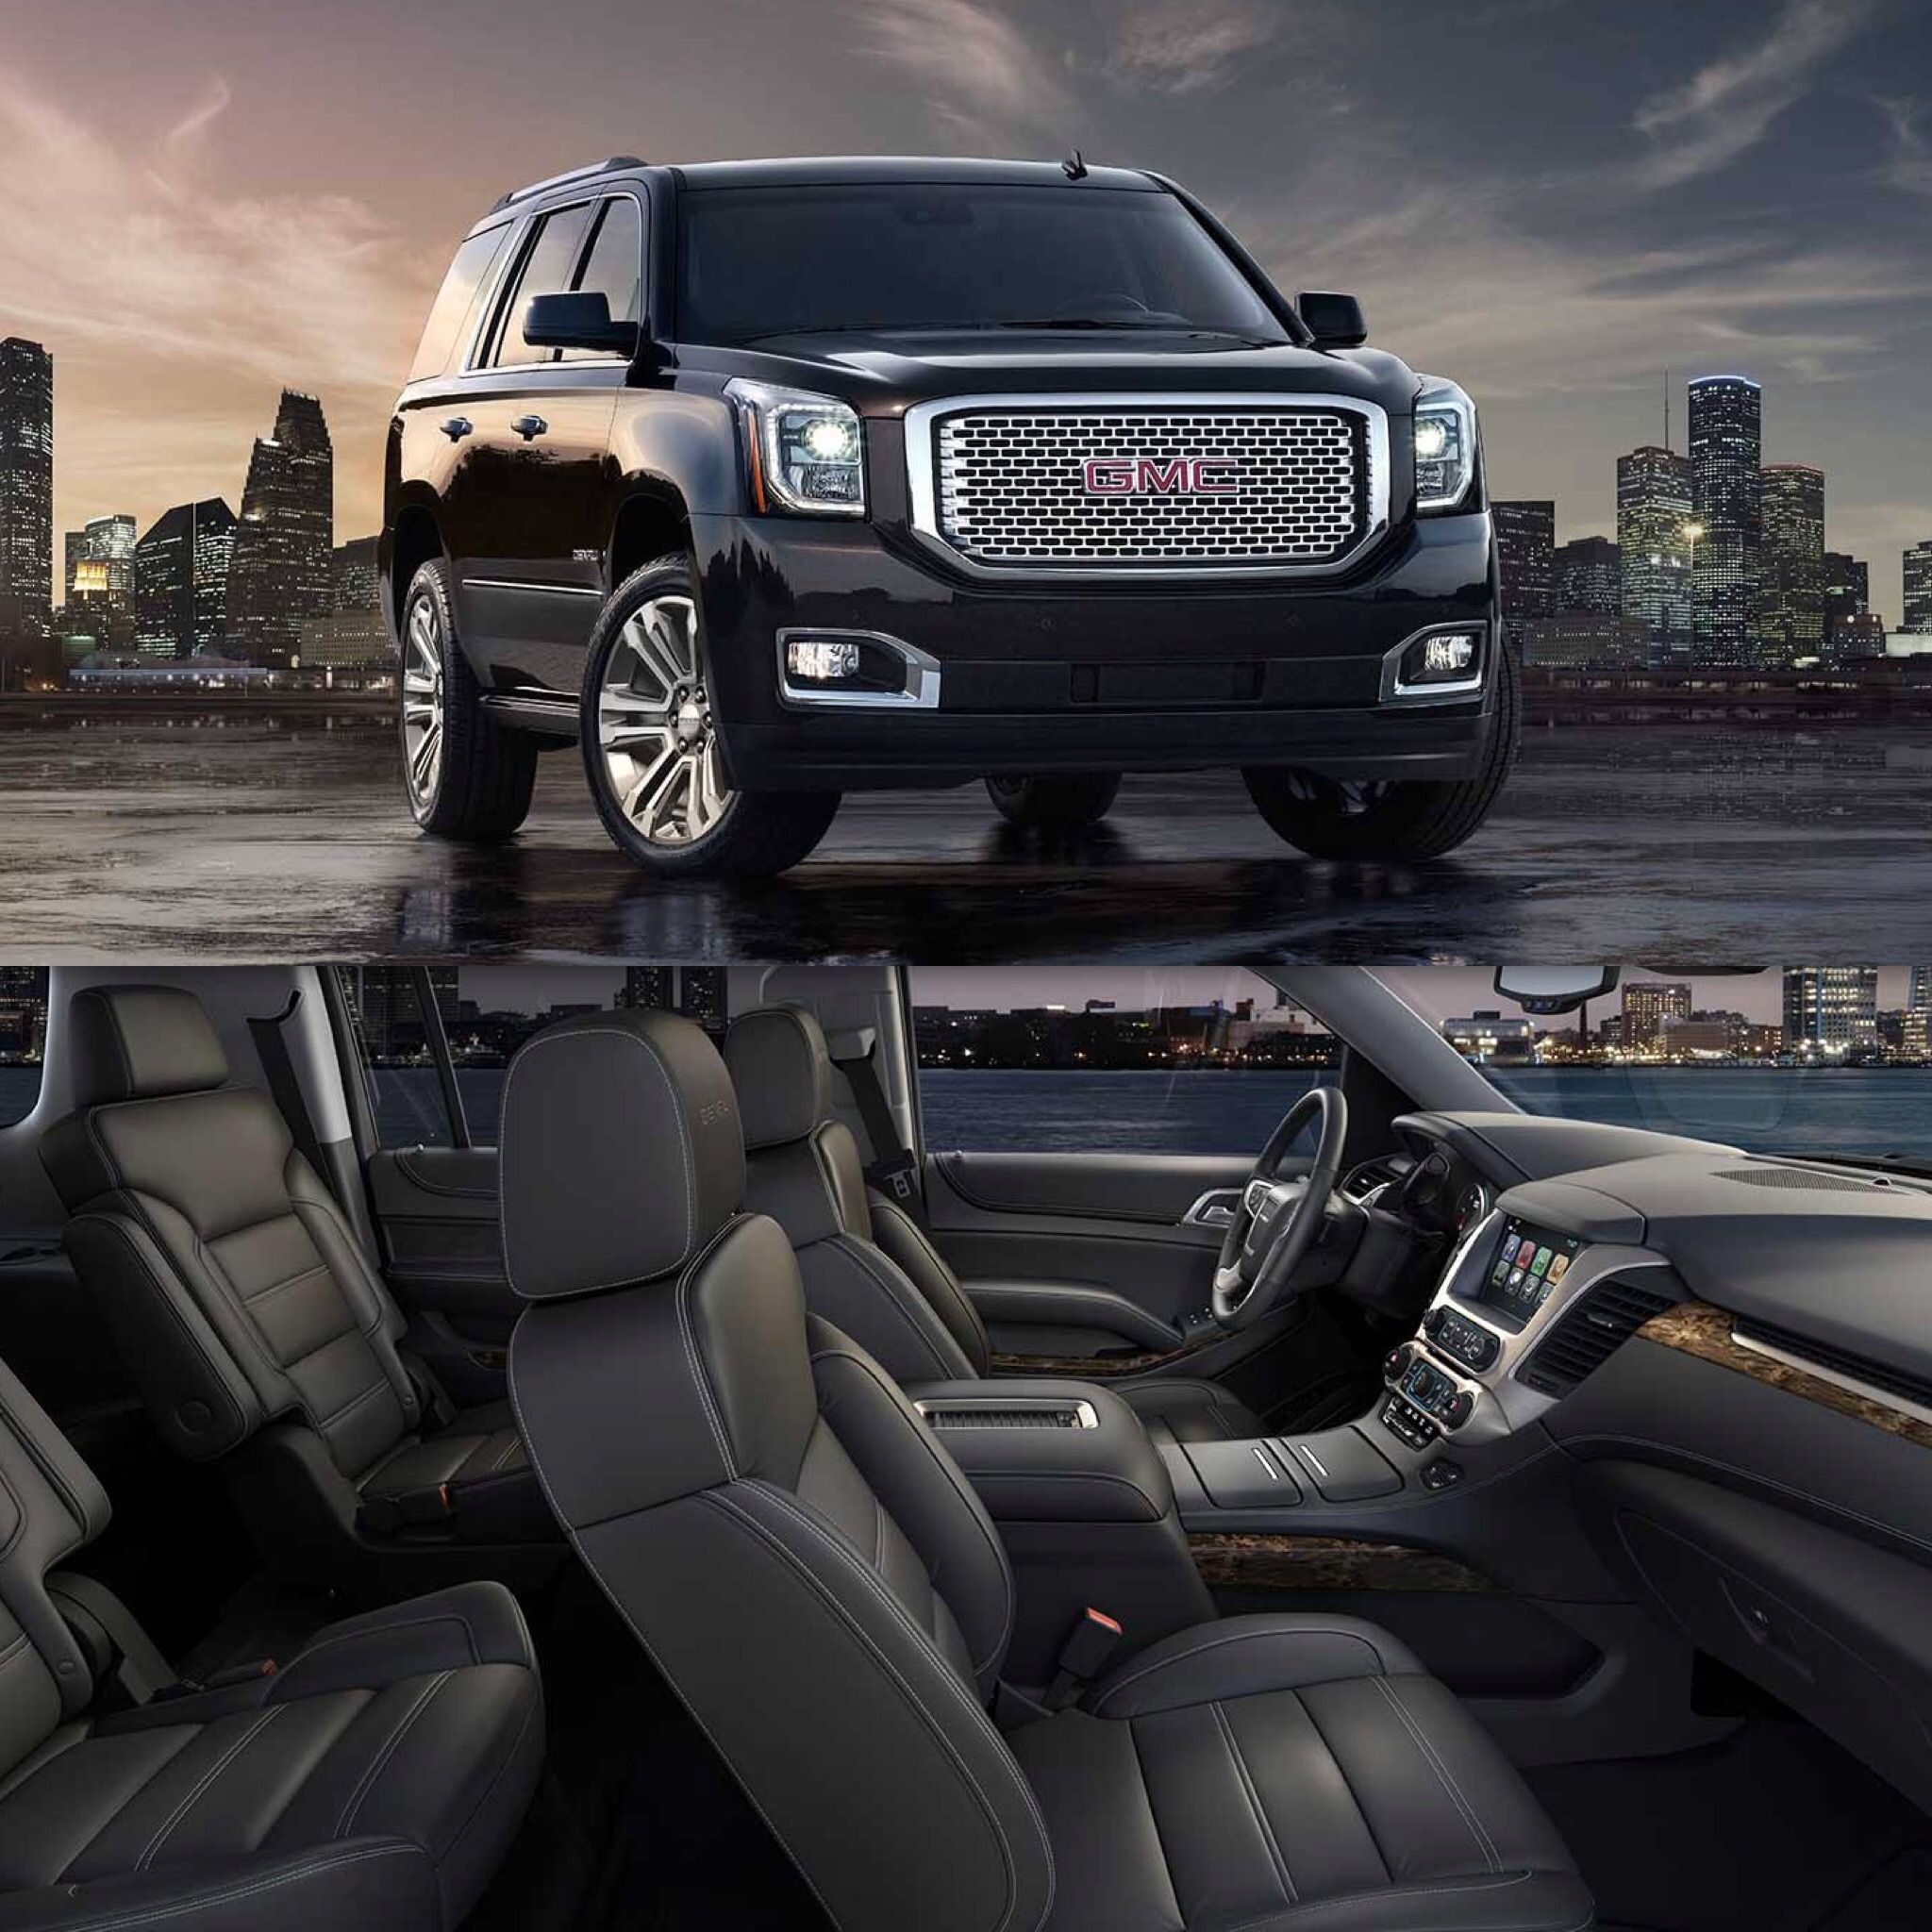 The Gmc Yukon Denali Isn T Just A Full Size Suv It S An